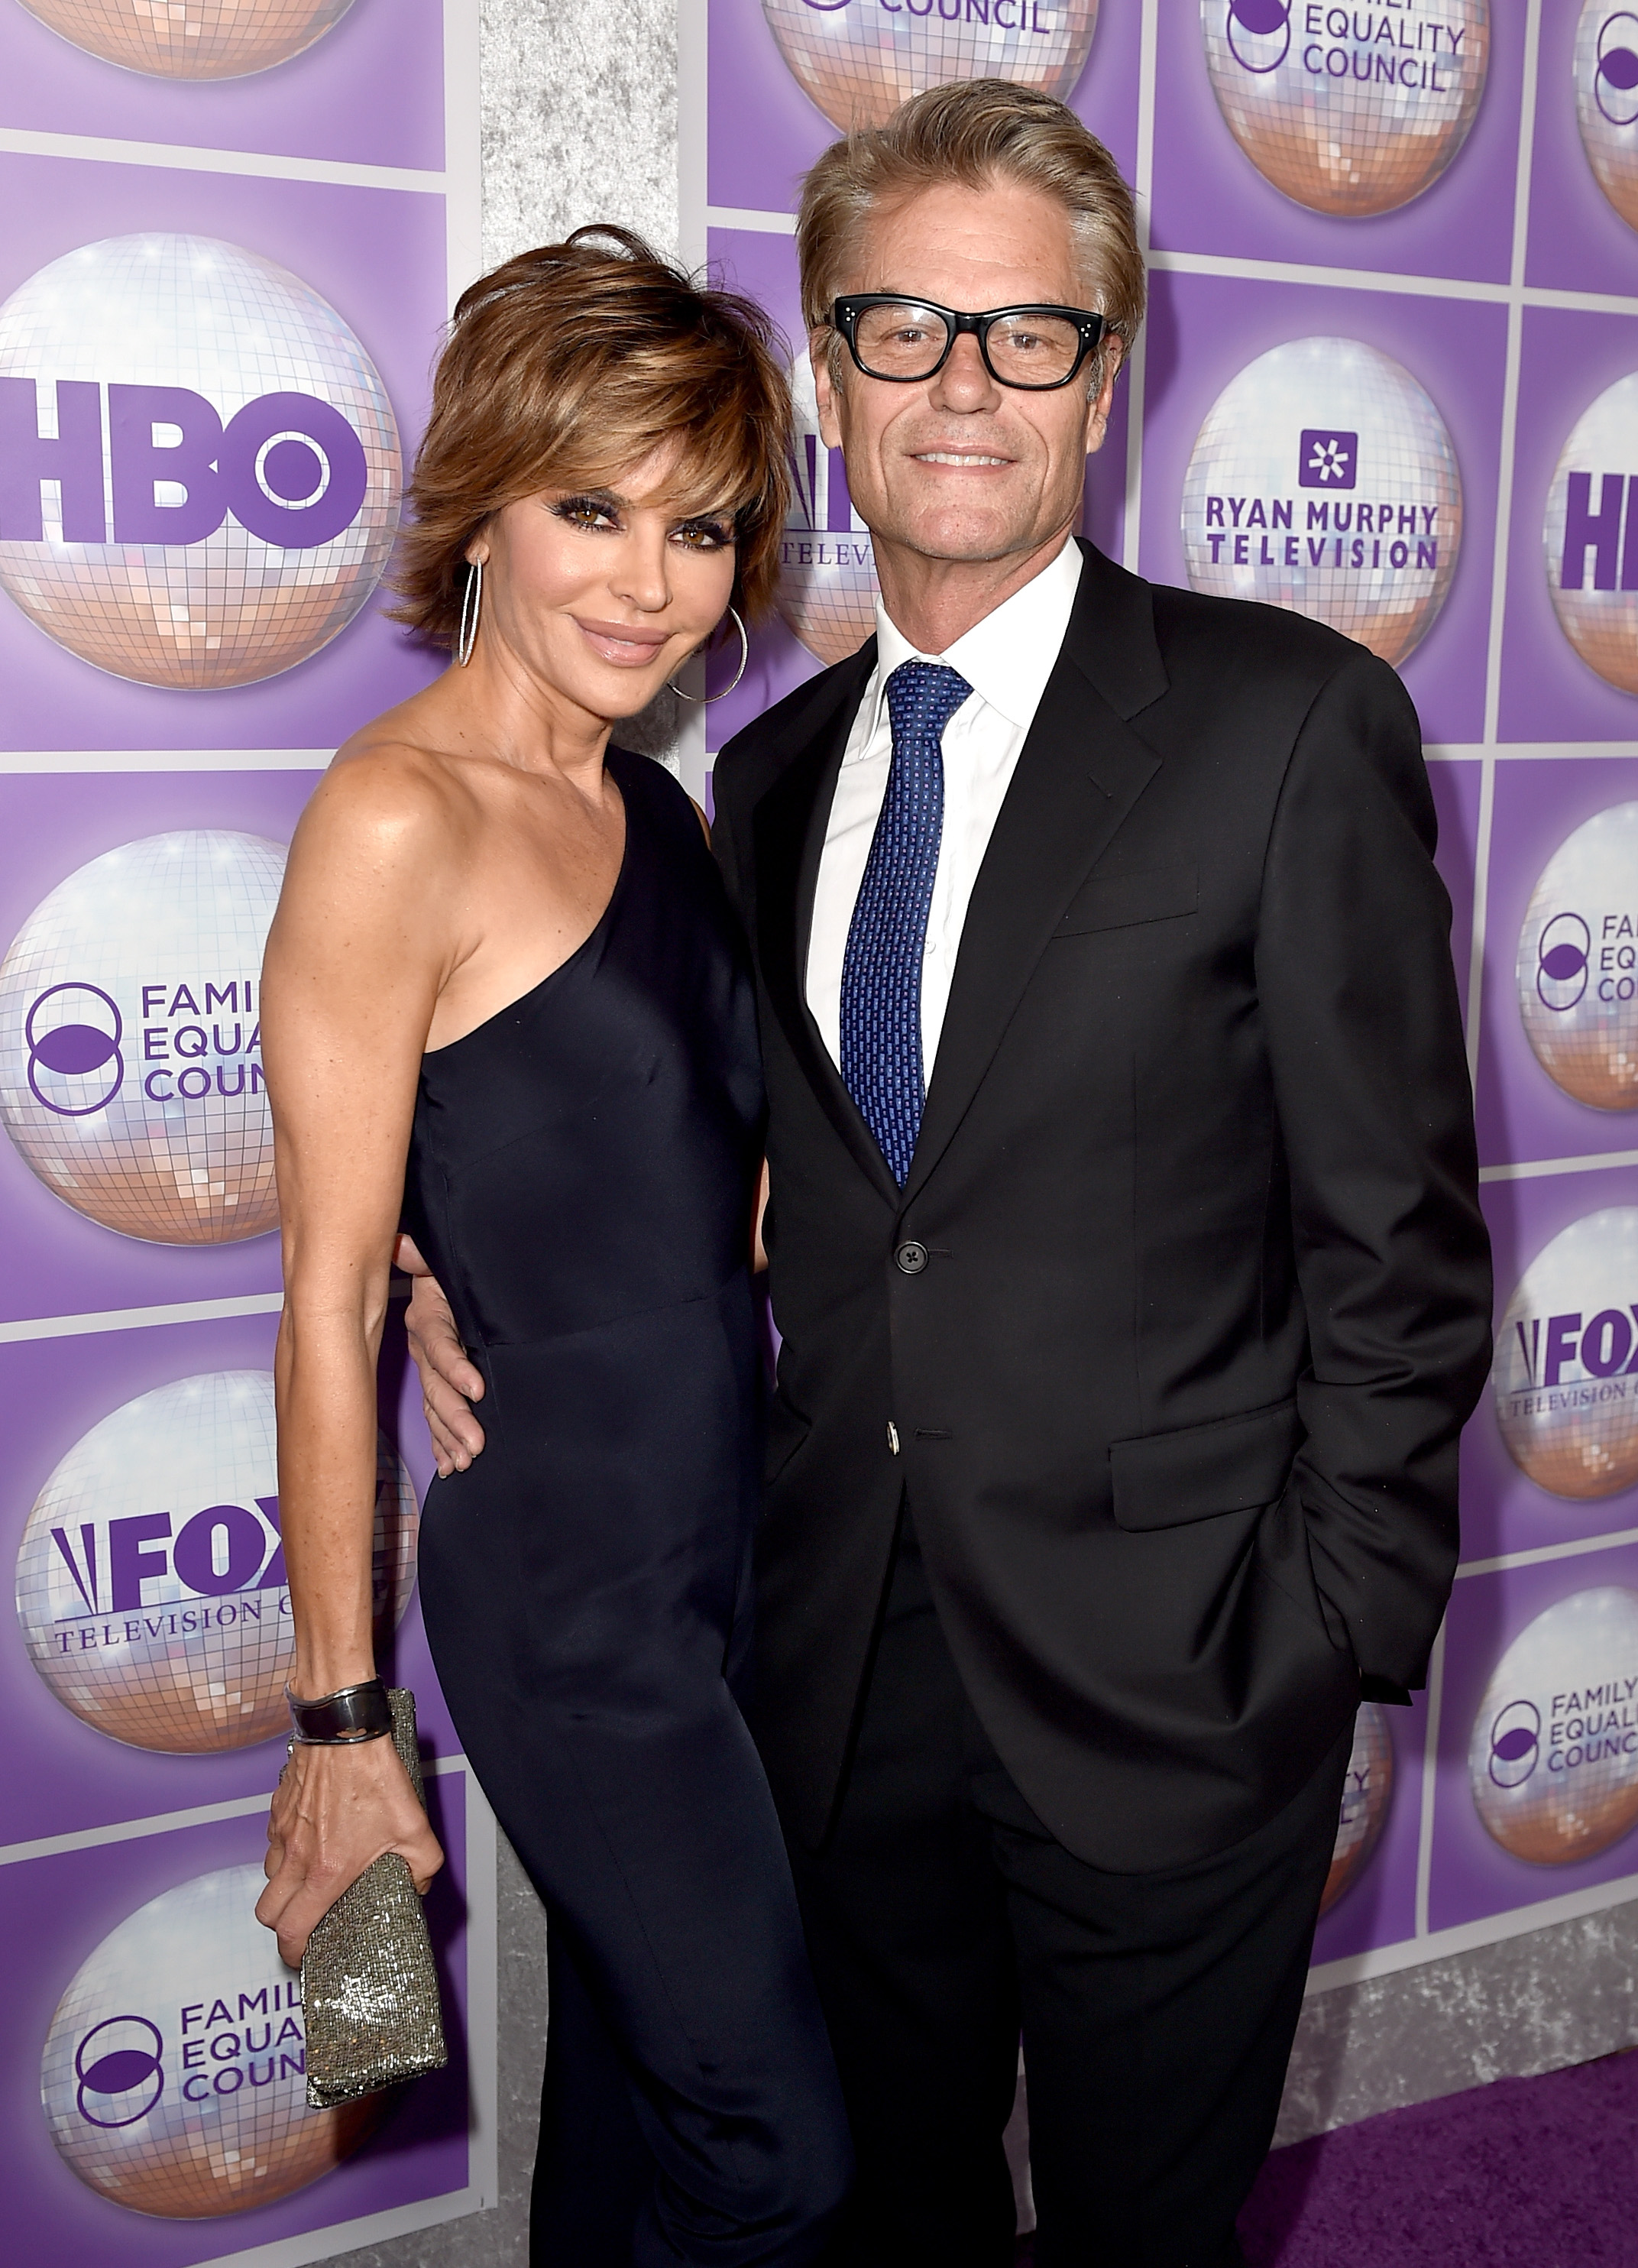 Lisa Rinna with handsome, Husband Harry Hamlin